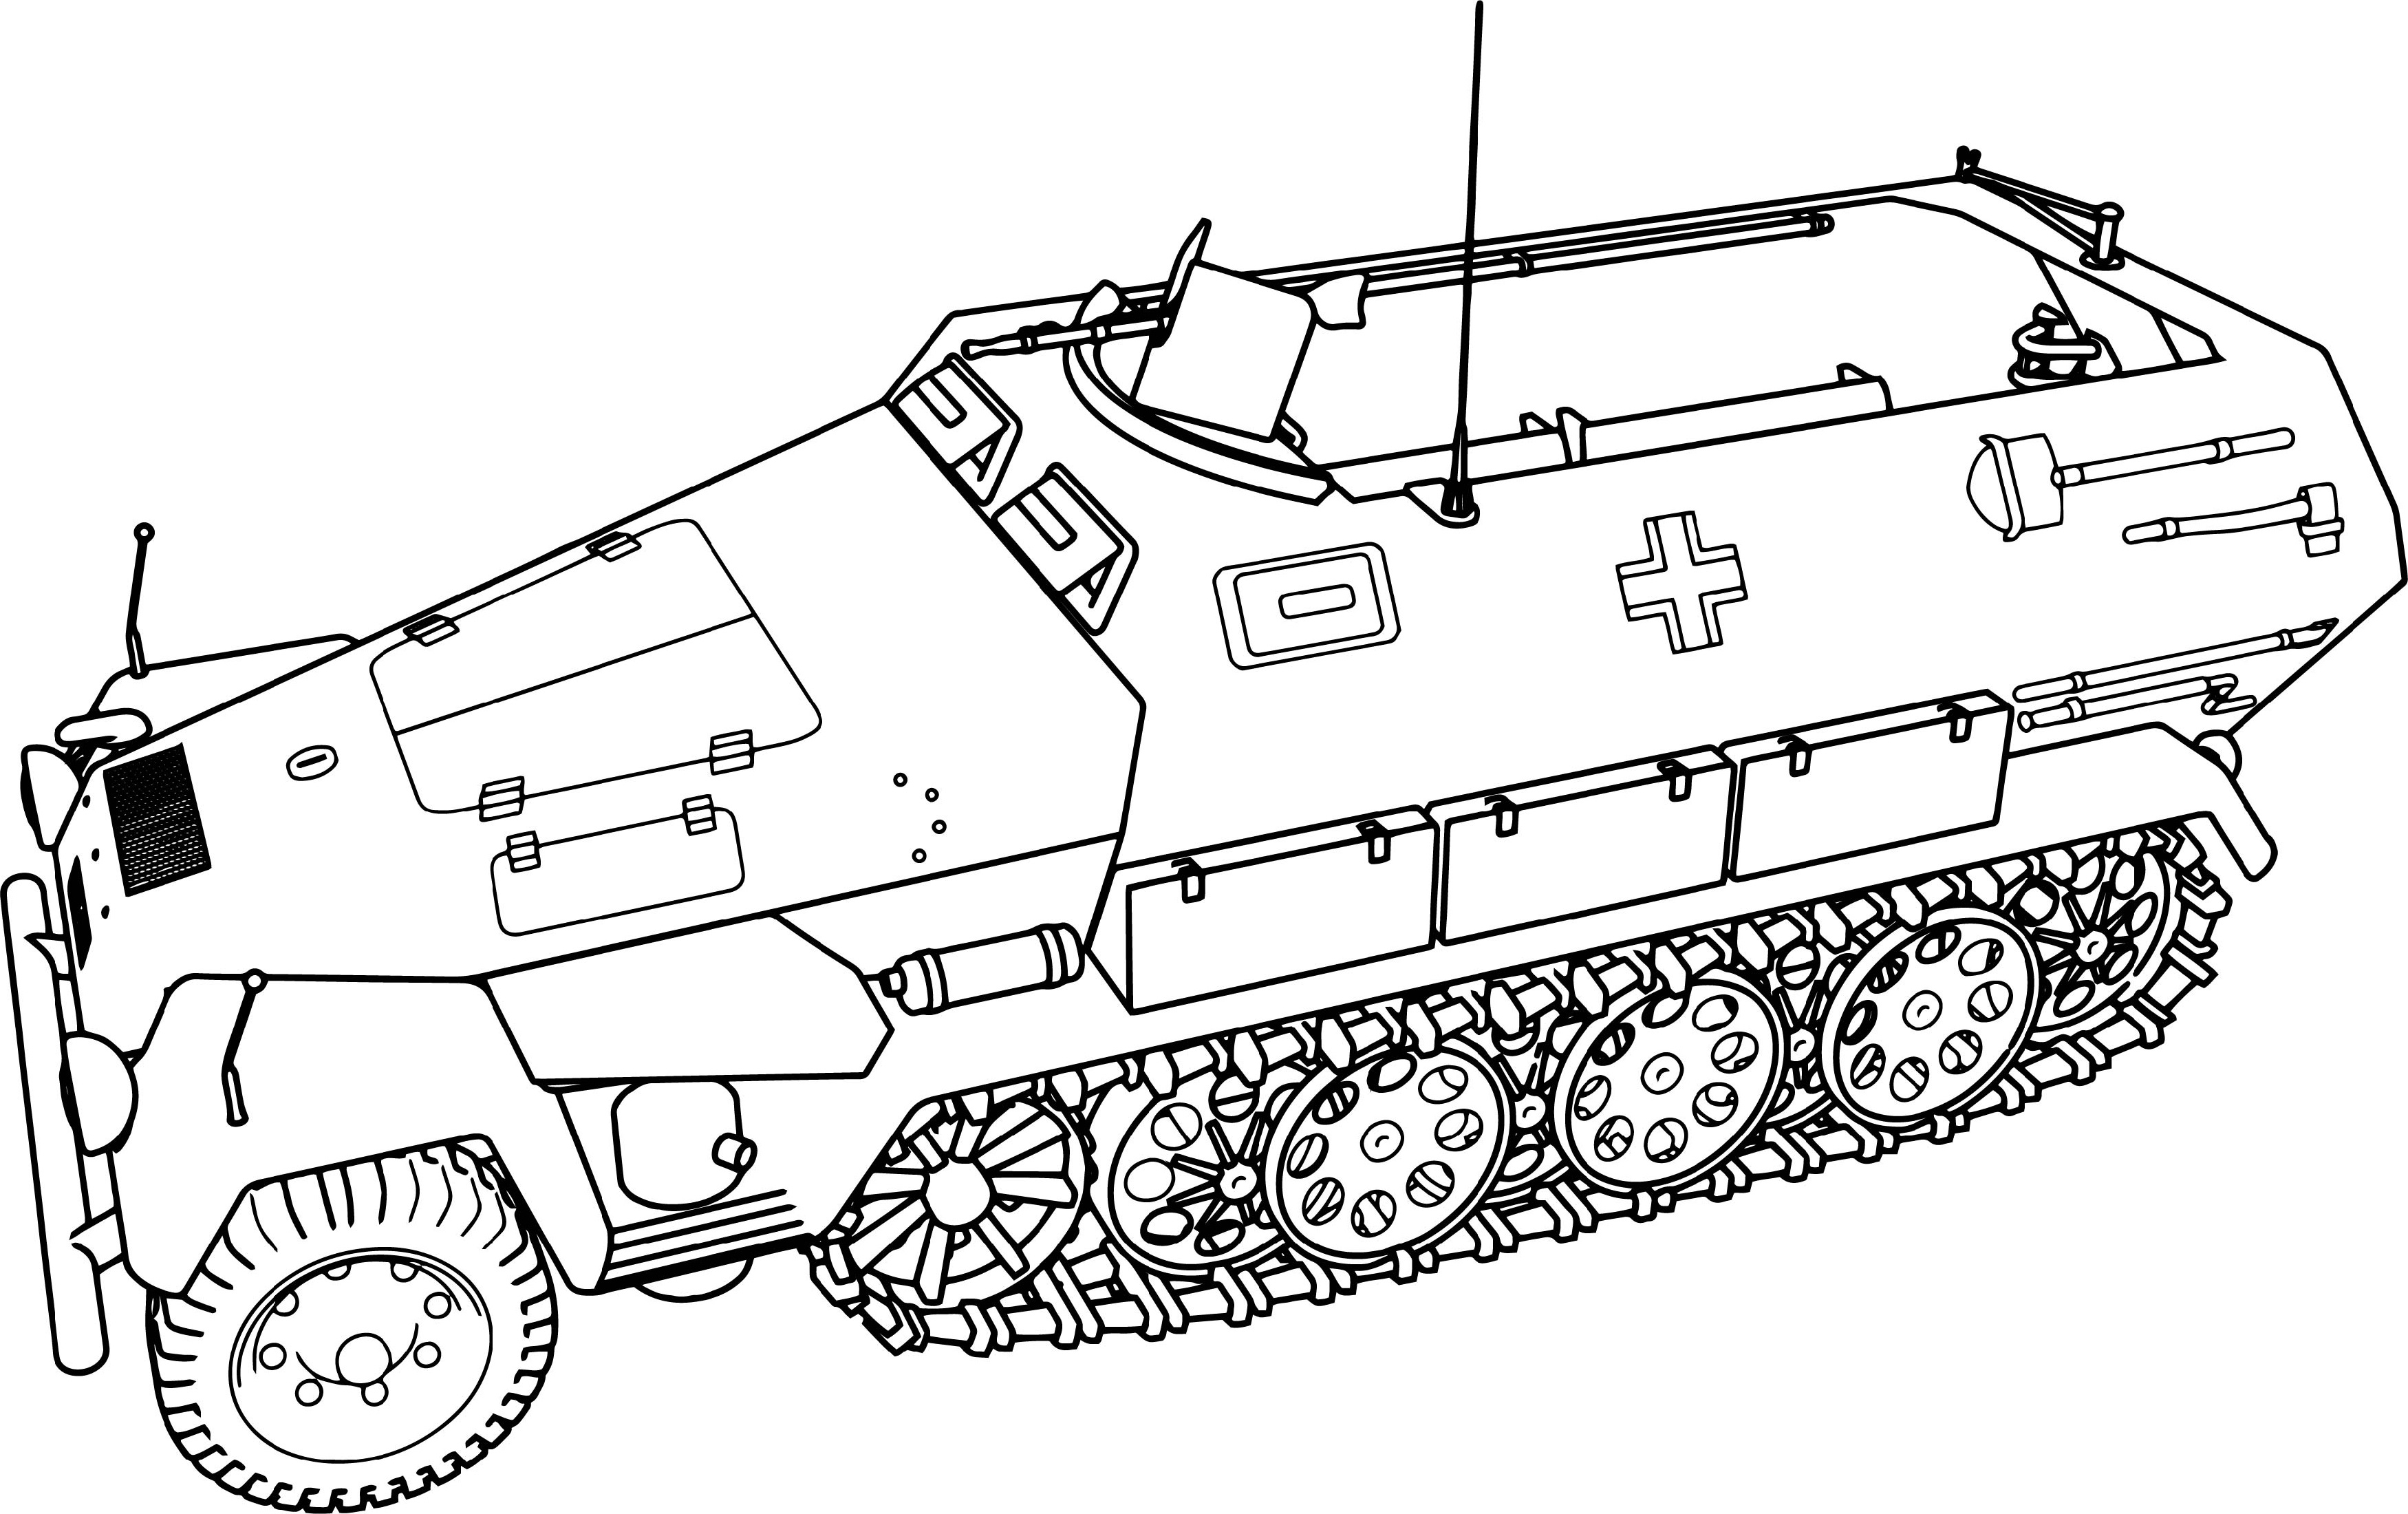 army tanks coloring pages tanks coloratornet Сoloring pages for children coloring tanks army pages